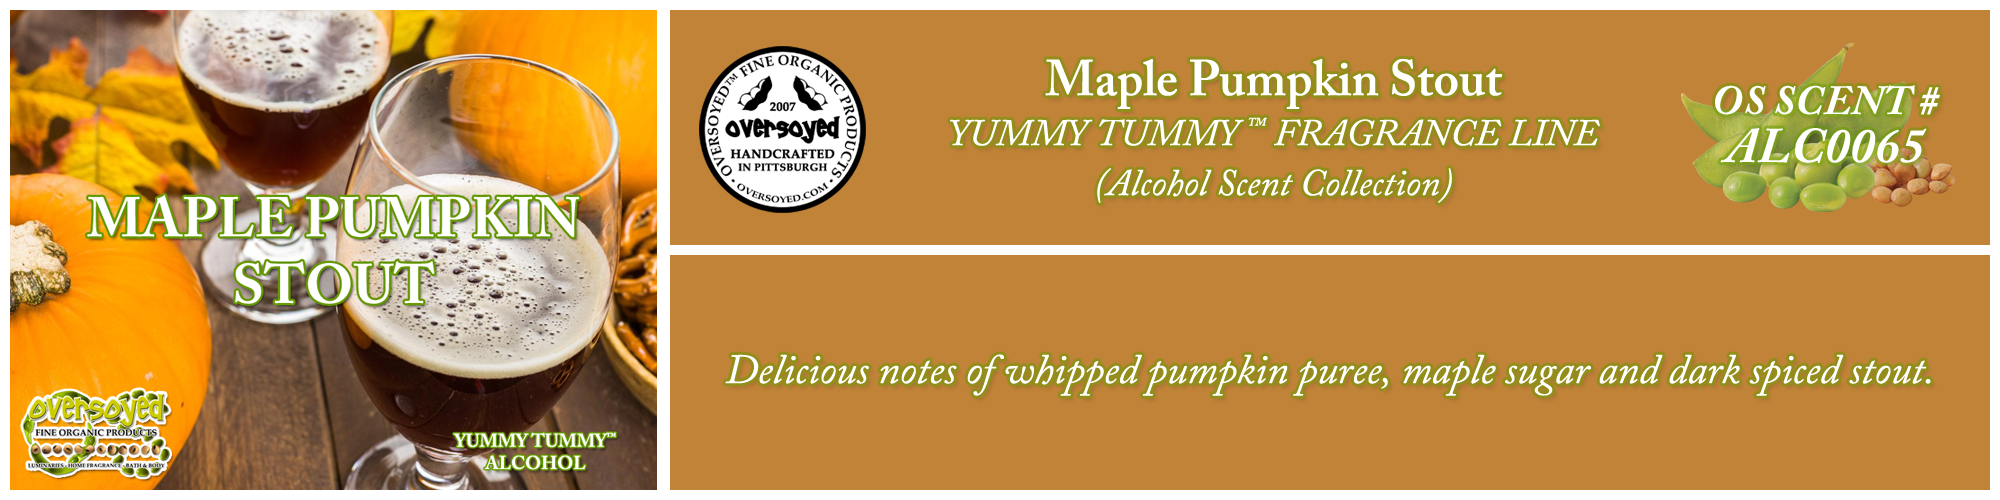 Maple Pumpkin Stout Handcrafted Products Collection